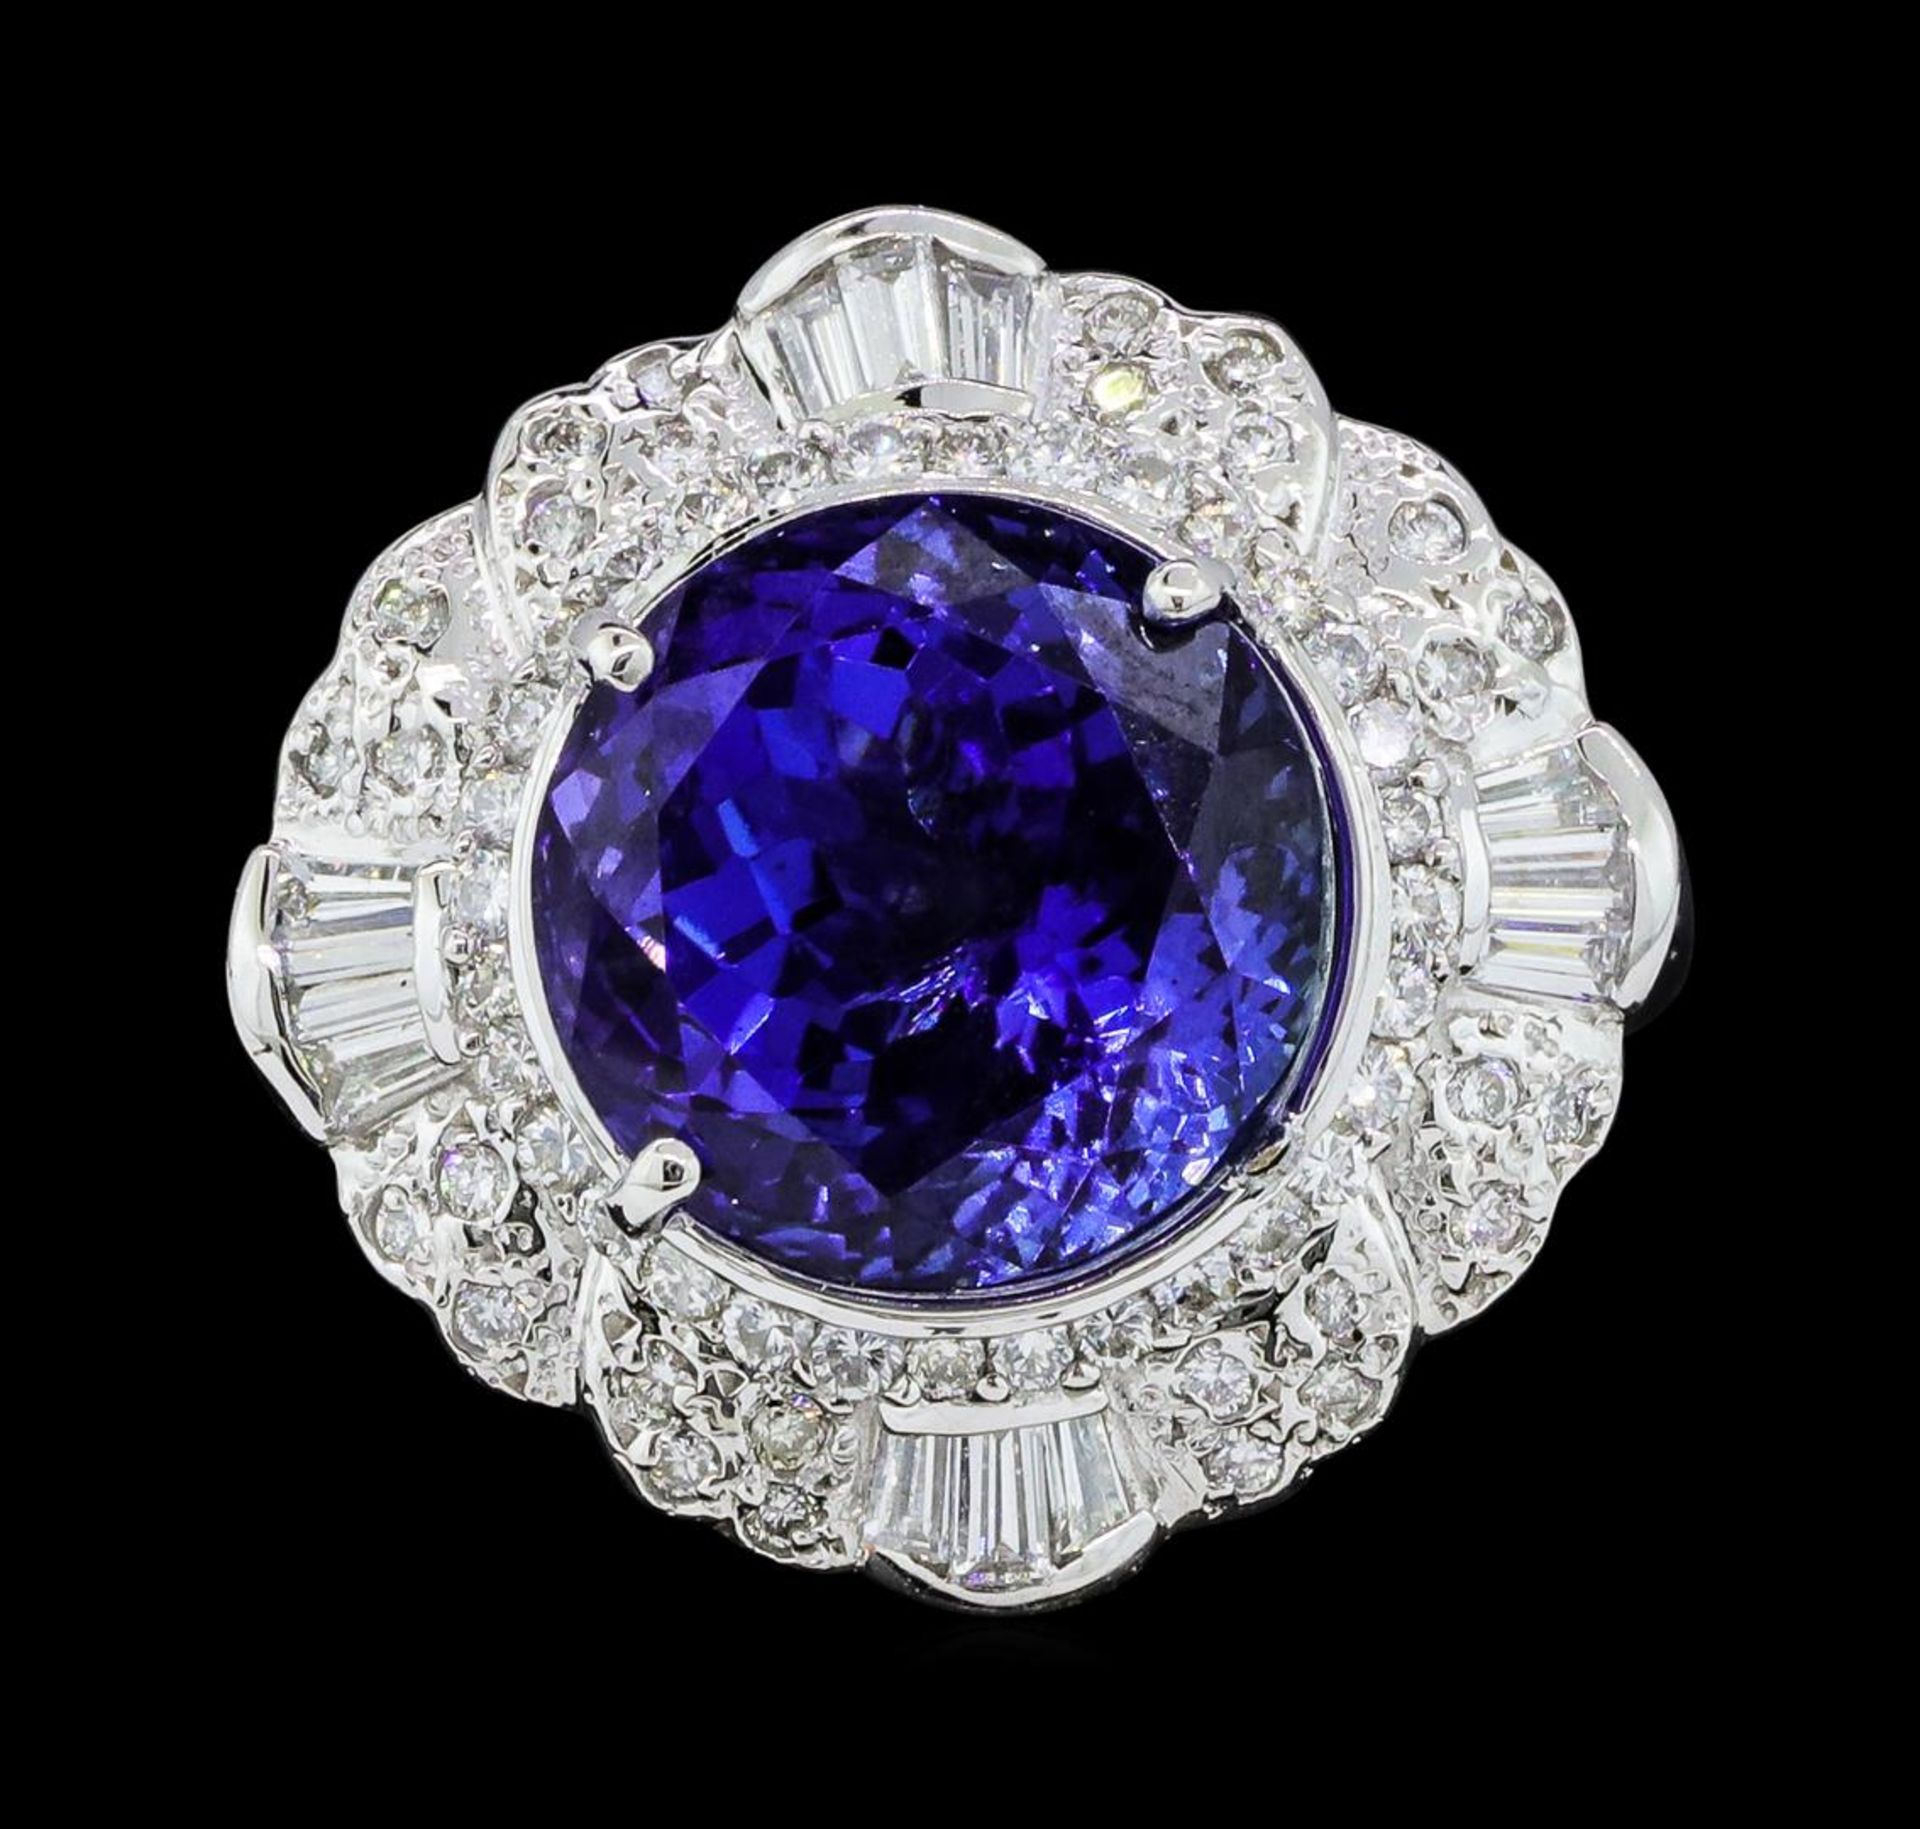 14.11 ctw Round Brilliant Tanzanite And Baguette Cut (Tapered) Diamond Ring - 18 - Image 2 of 5